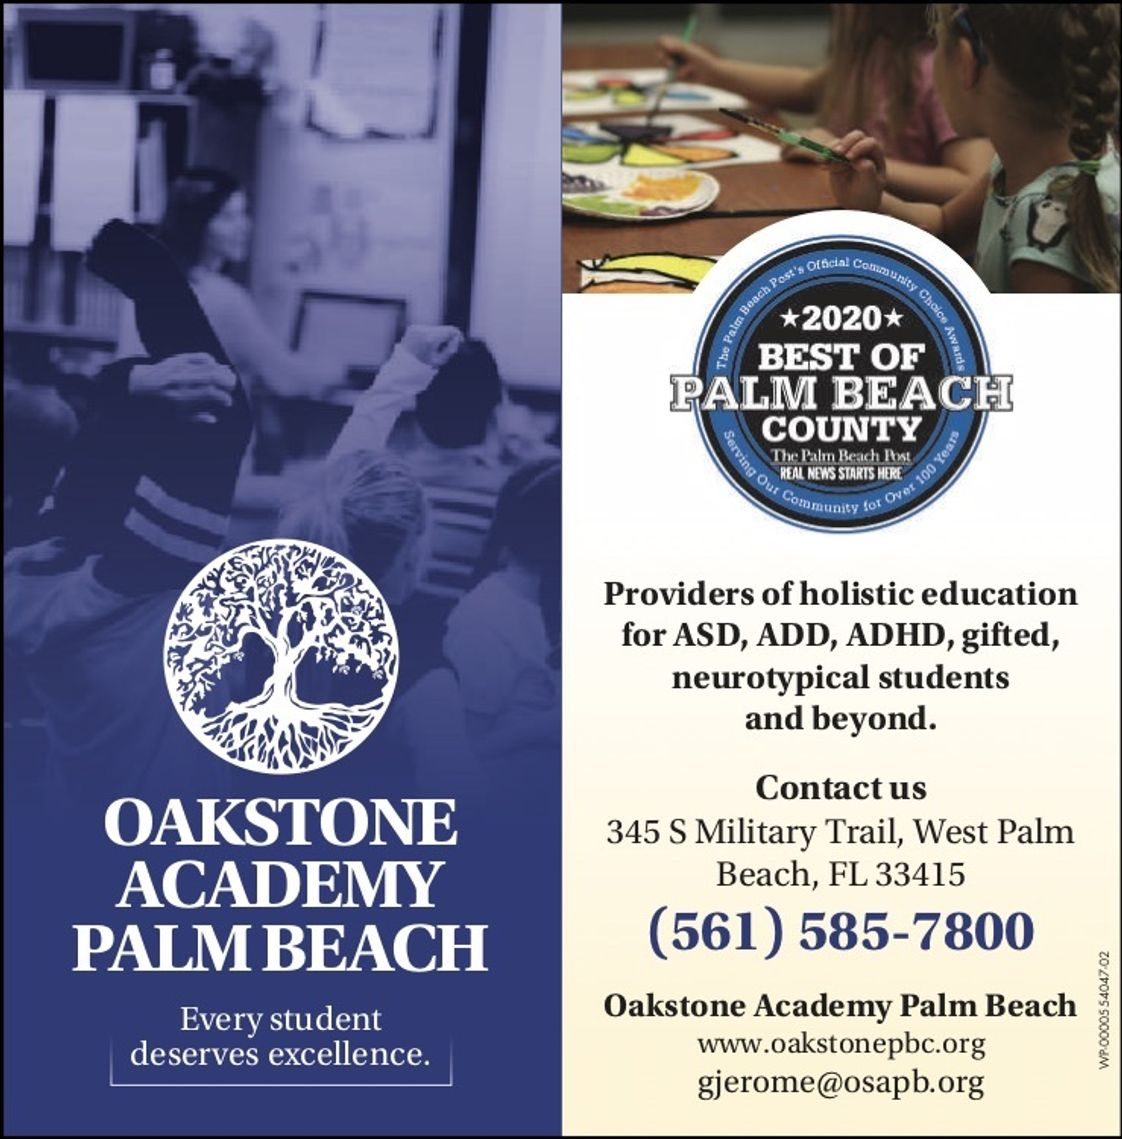 Oakstone Academy Palm Beach Photo - Oakstone was nominated as one of the top 3 private schools in Palm Beach County!